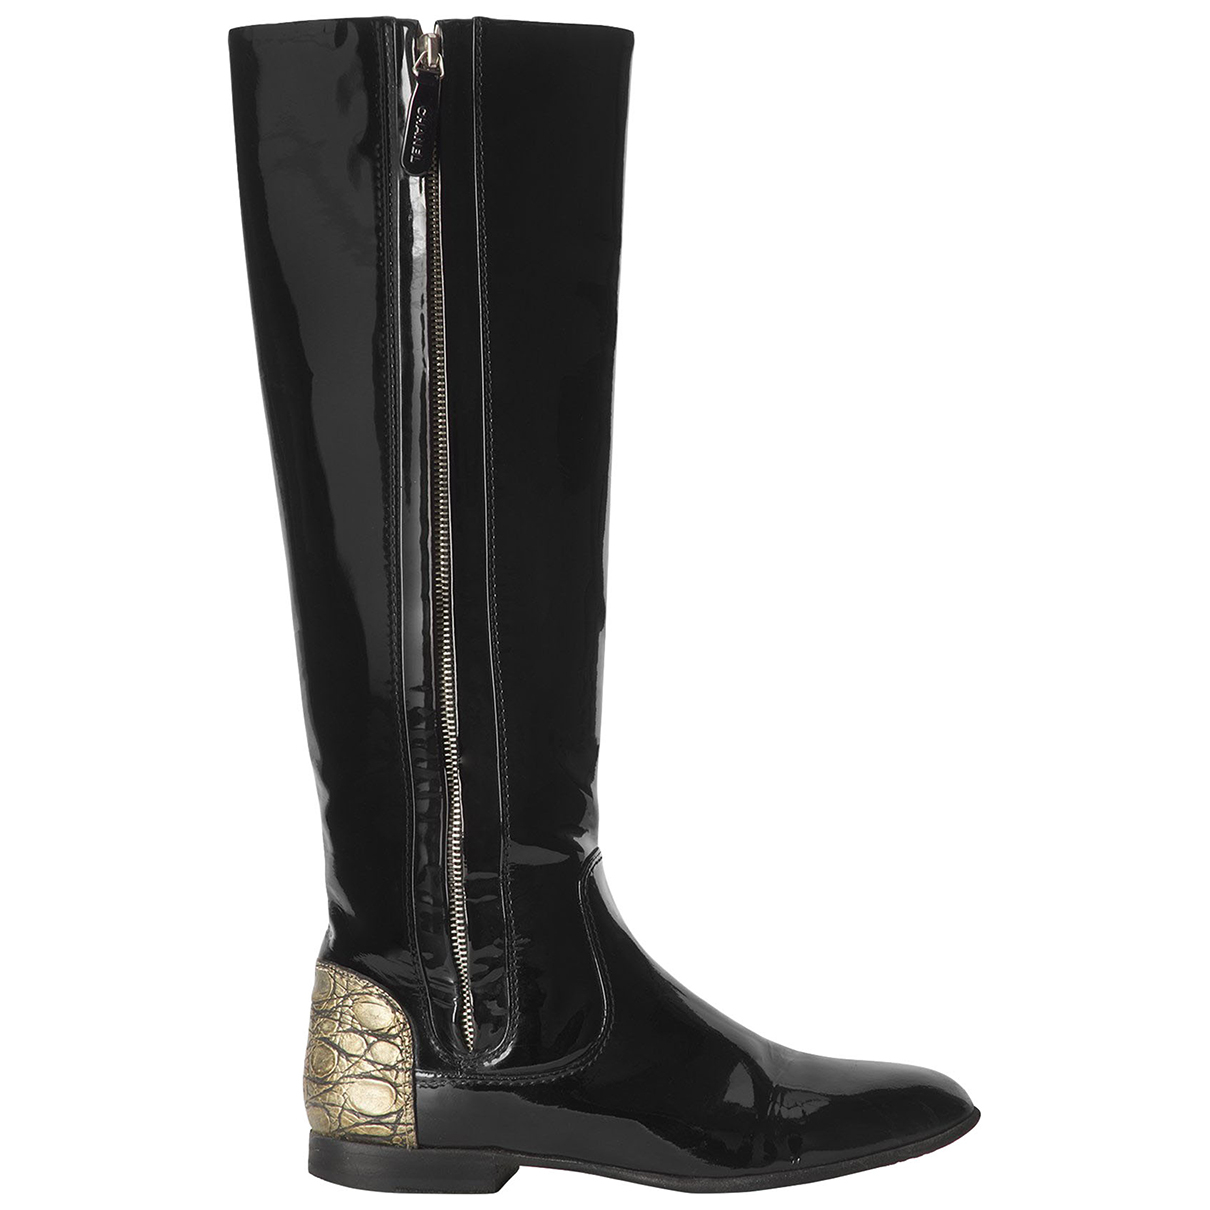 Chanel \N Black Patent leather Boots for Women 5 UK